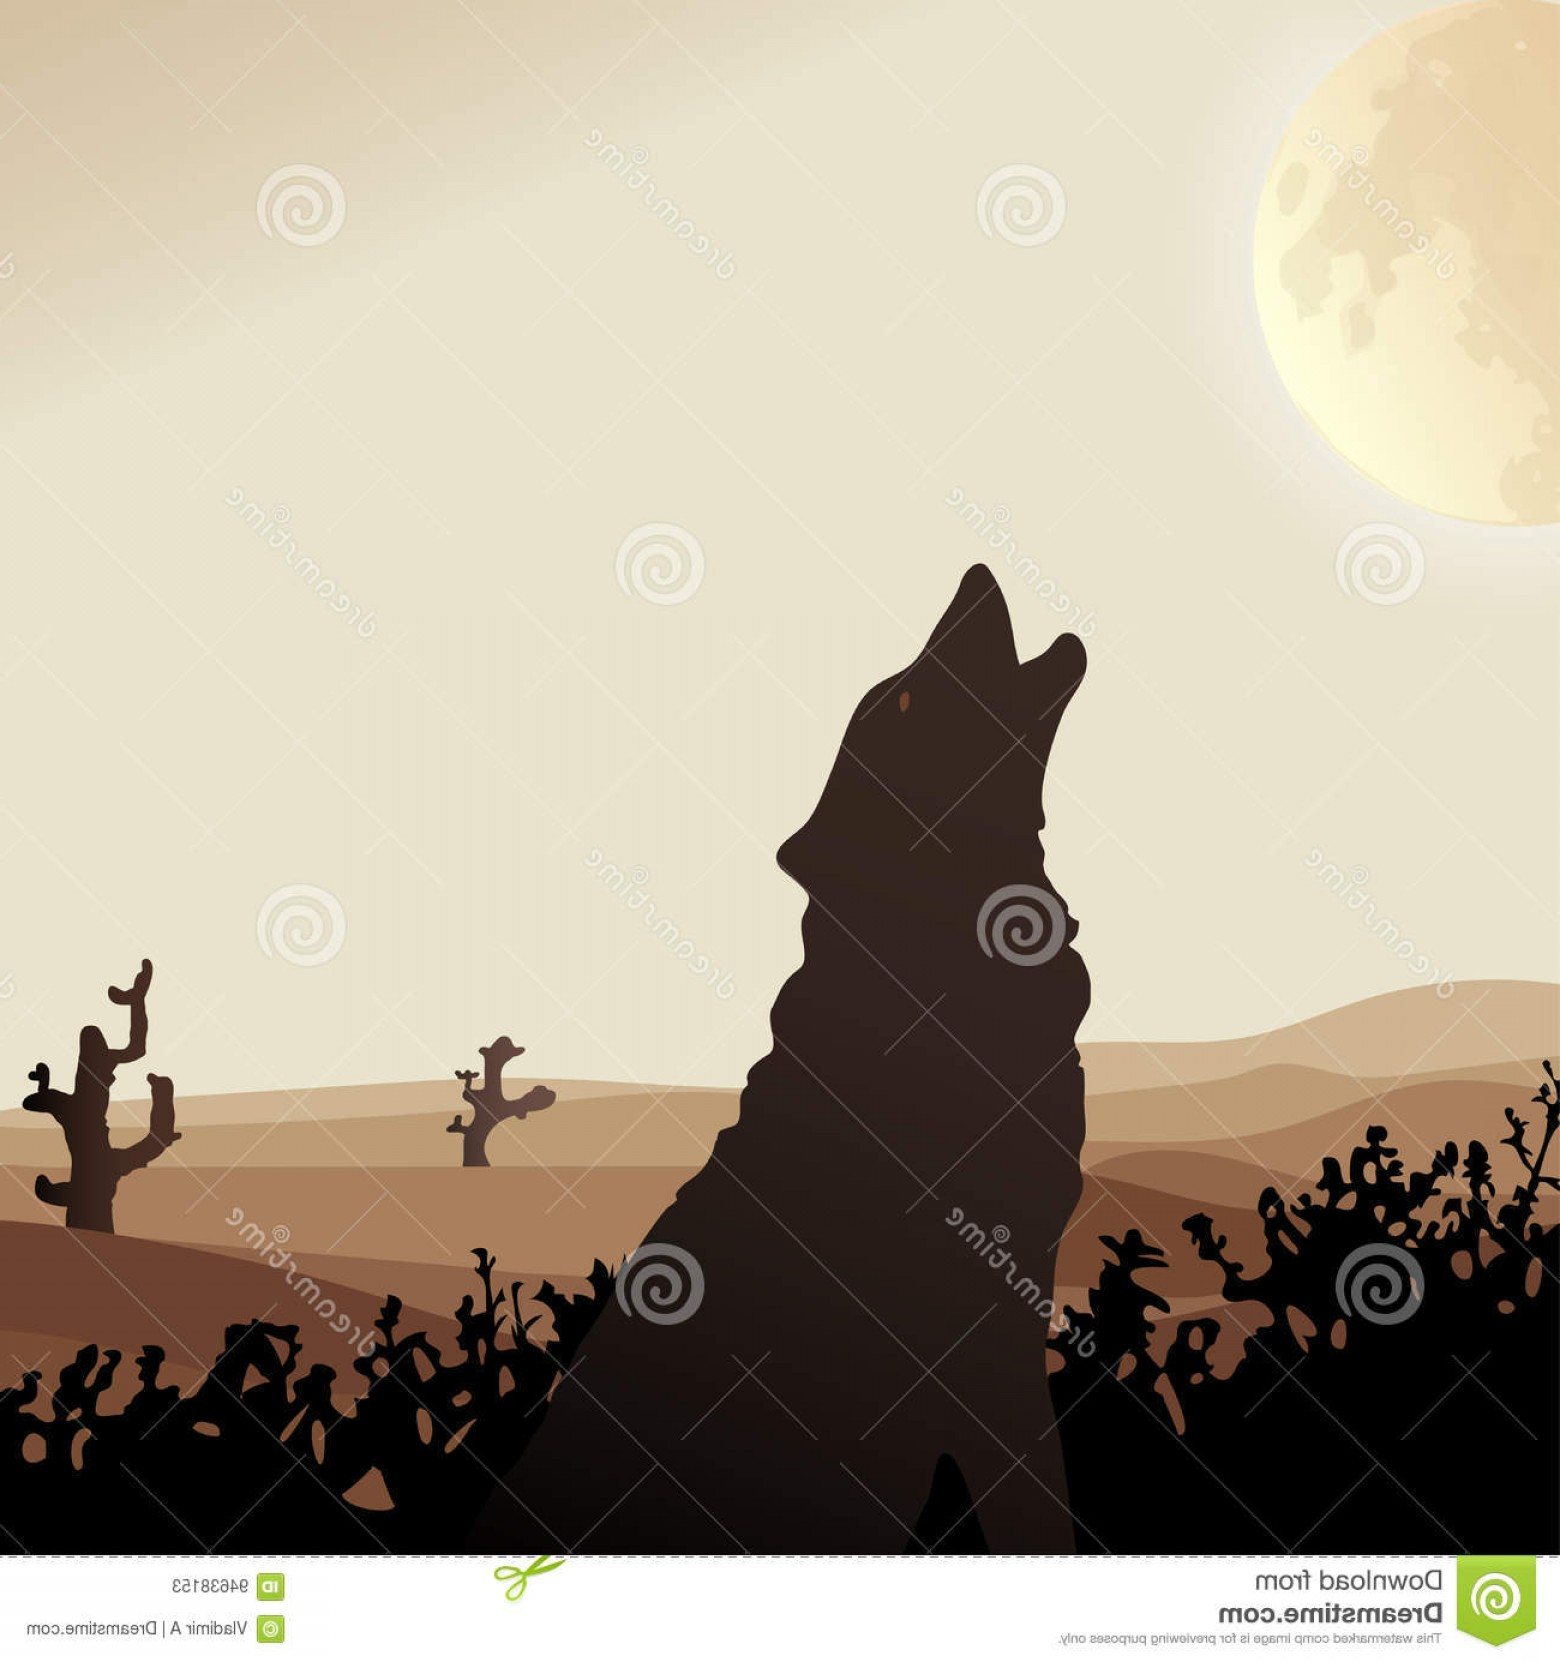 Sand Dune Silhouettes Vectors: Stock Illustration Desert Wolf Howls Moon Middle Sand Dunes Vector Silhouette Illustration Beige Tone Background Image